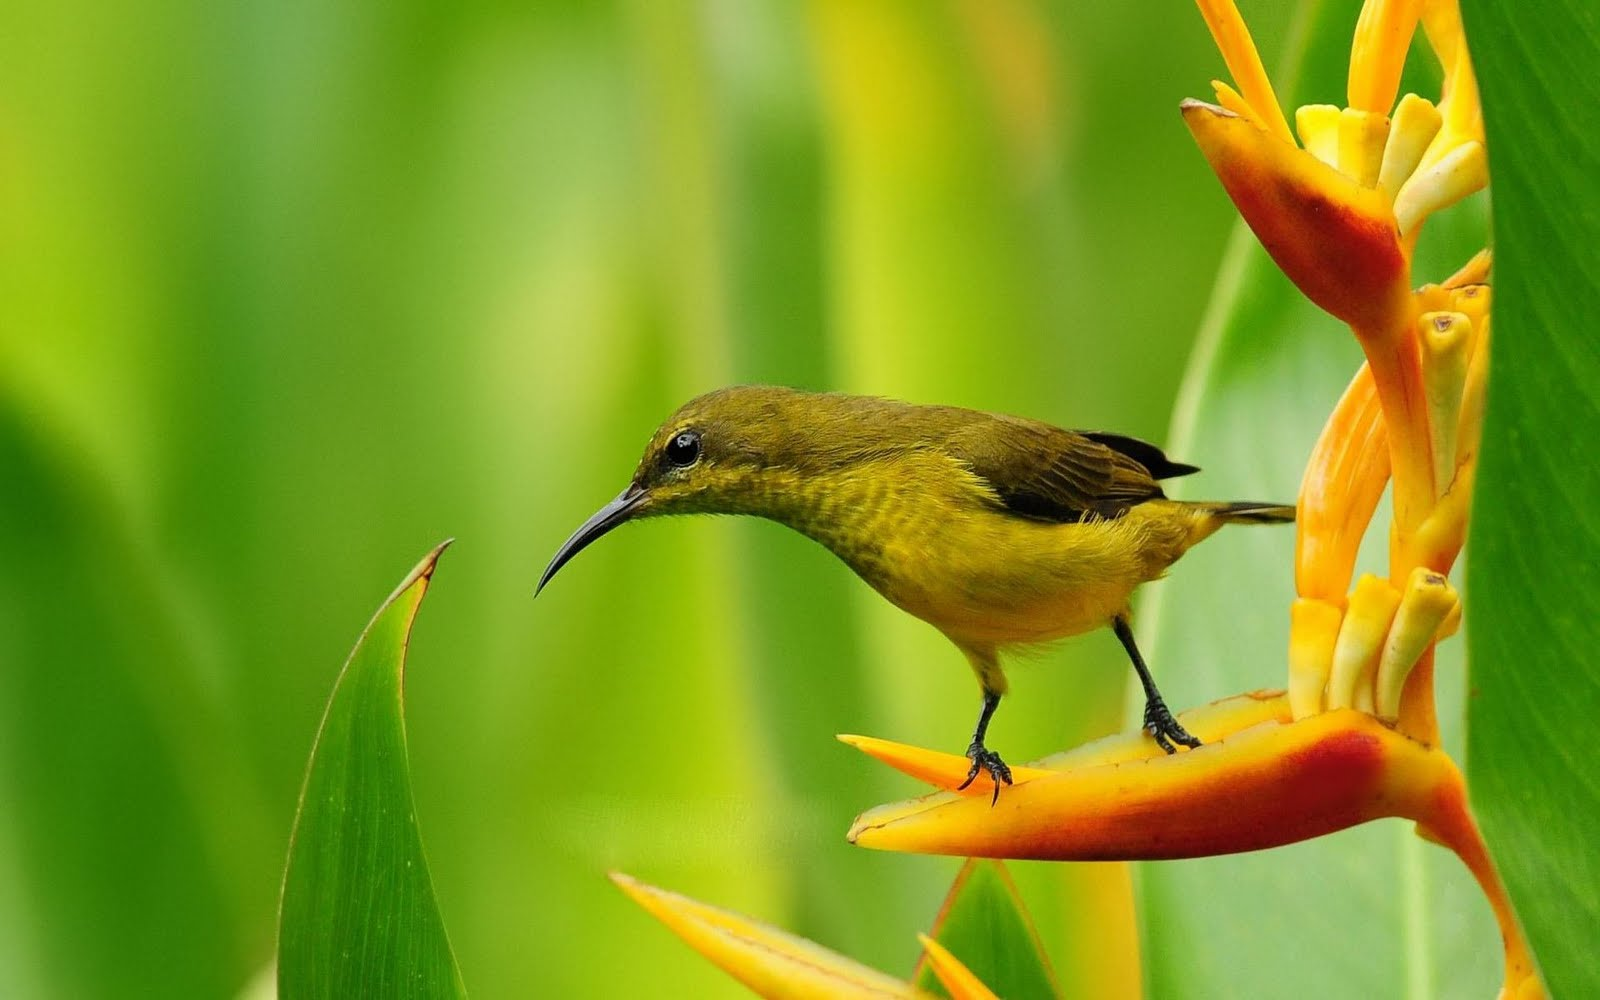 birds nature bird bing background desktop wallpapers flower paradise